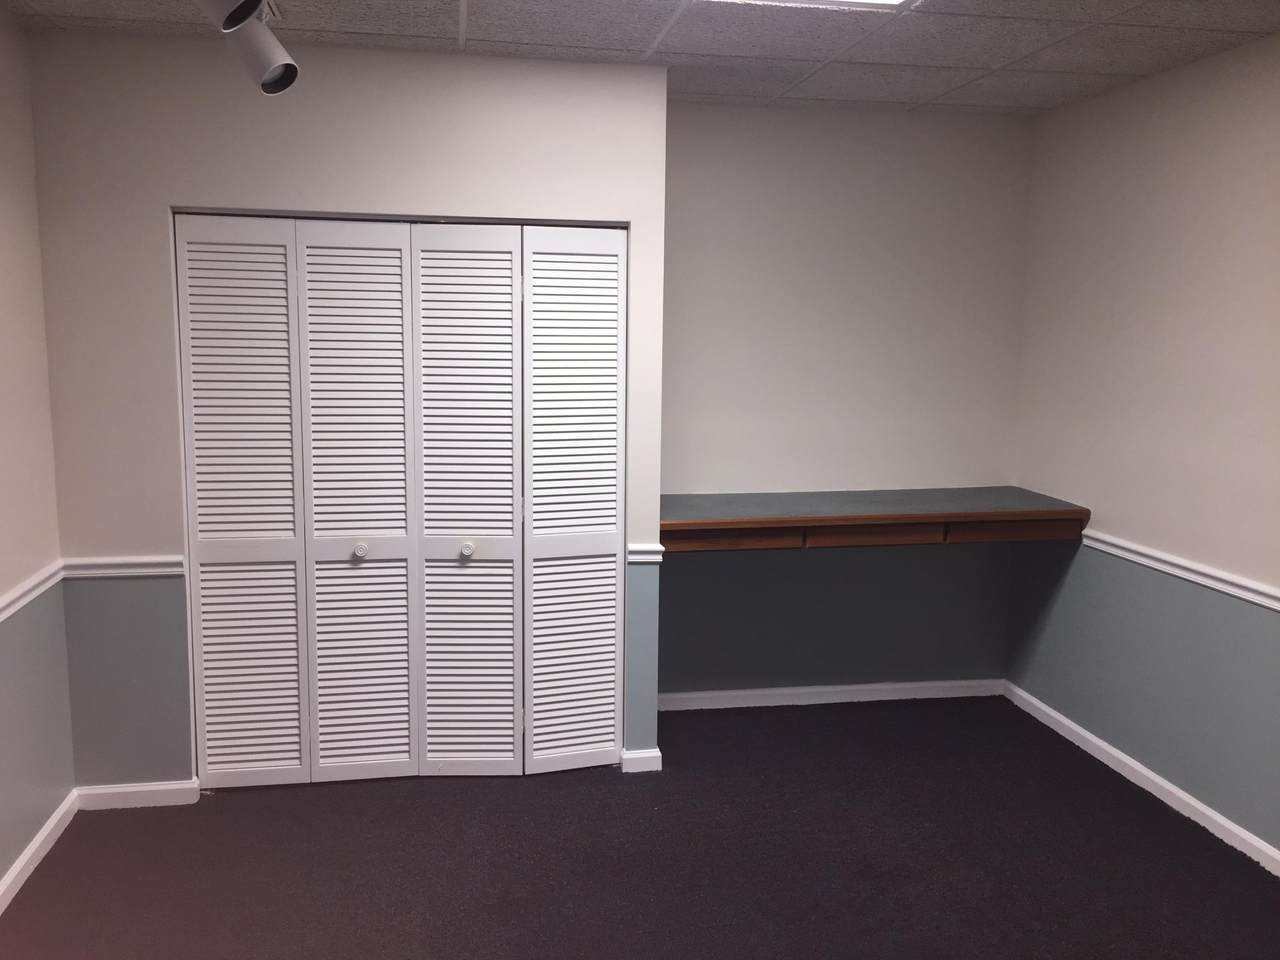 https://bt-photos.global.ssl.fastly.net/rmls/1280_boomver_1_RX-10667081-2.jpg